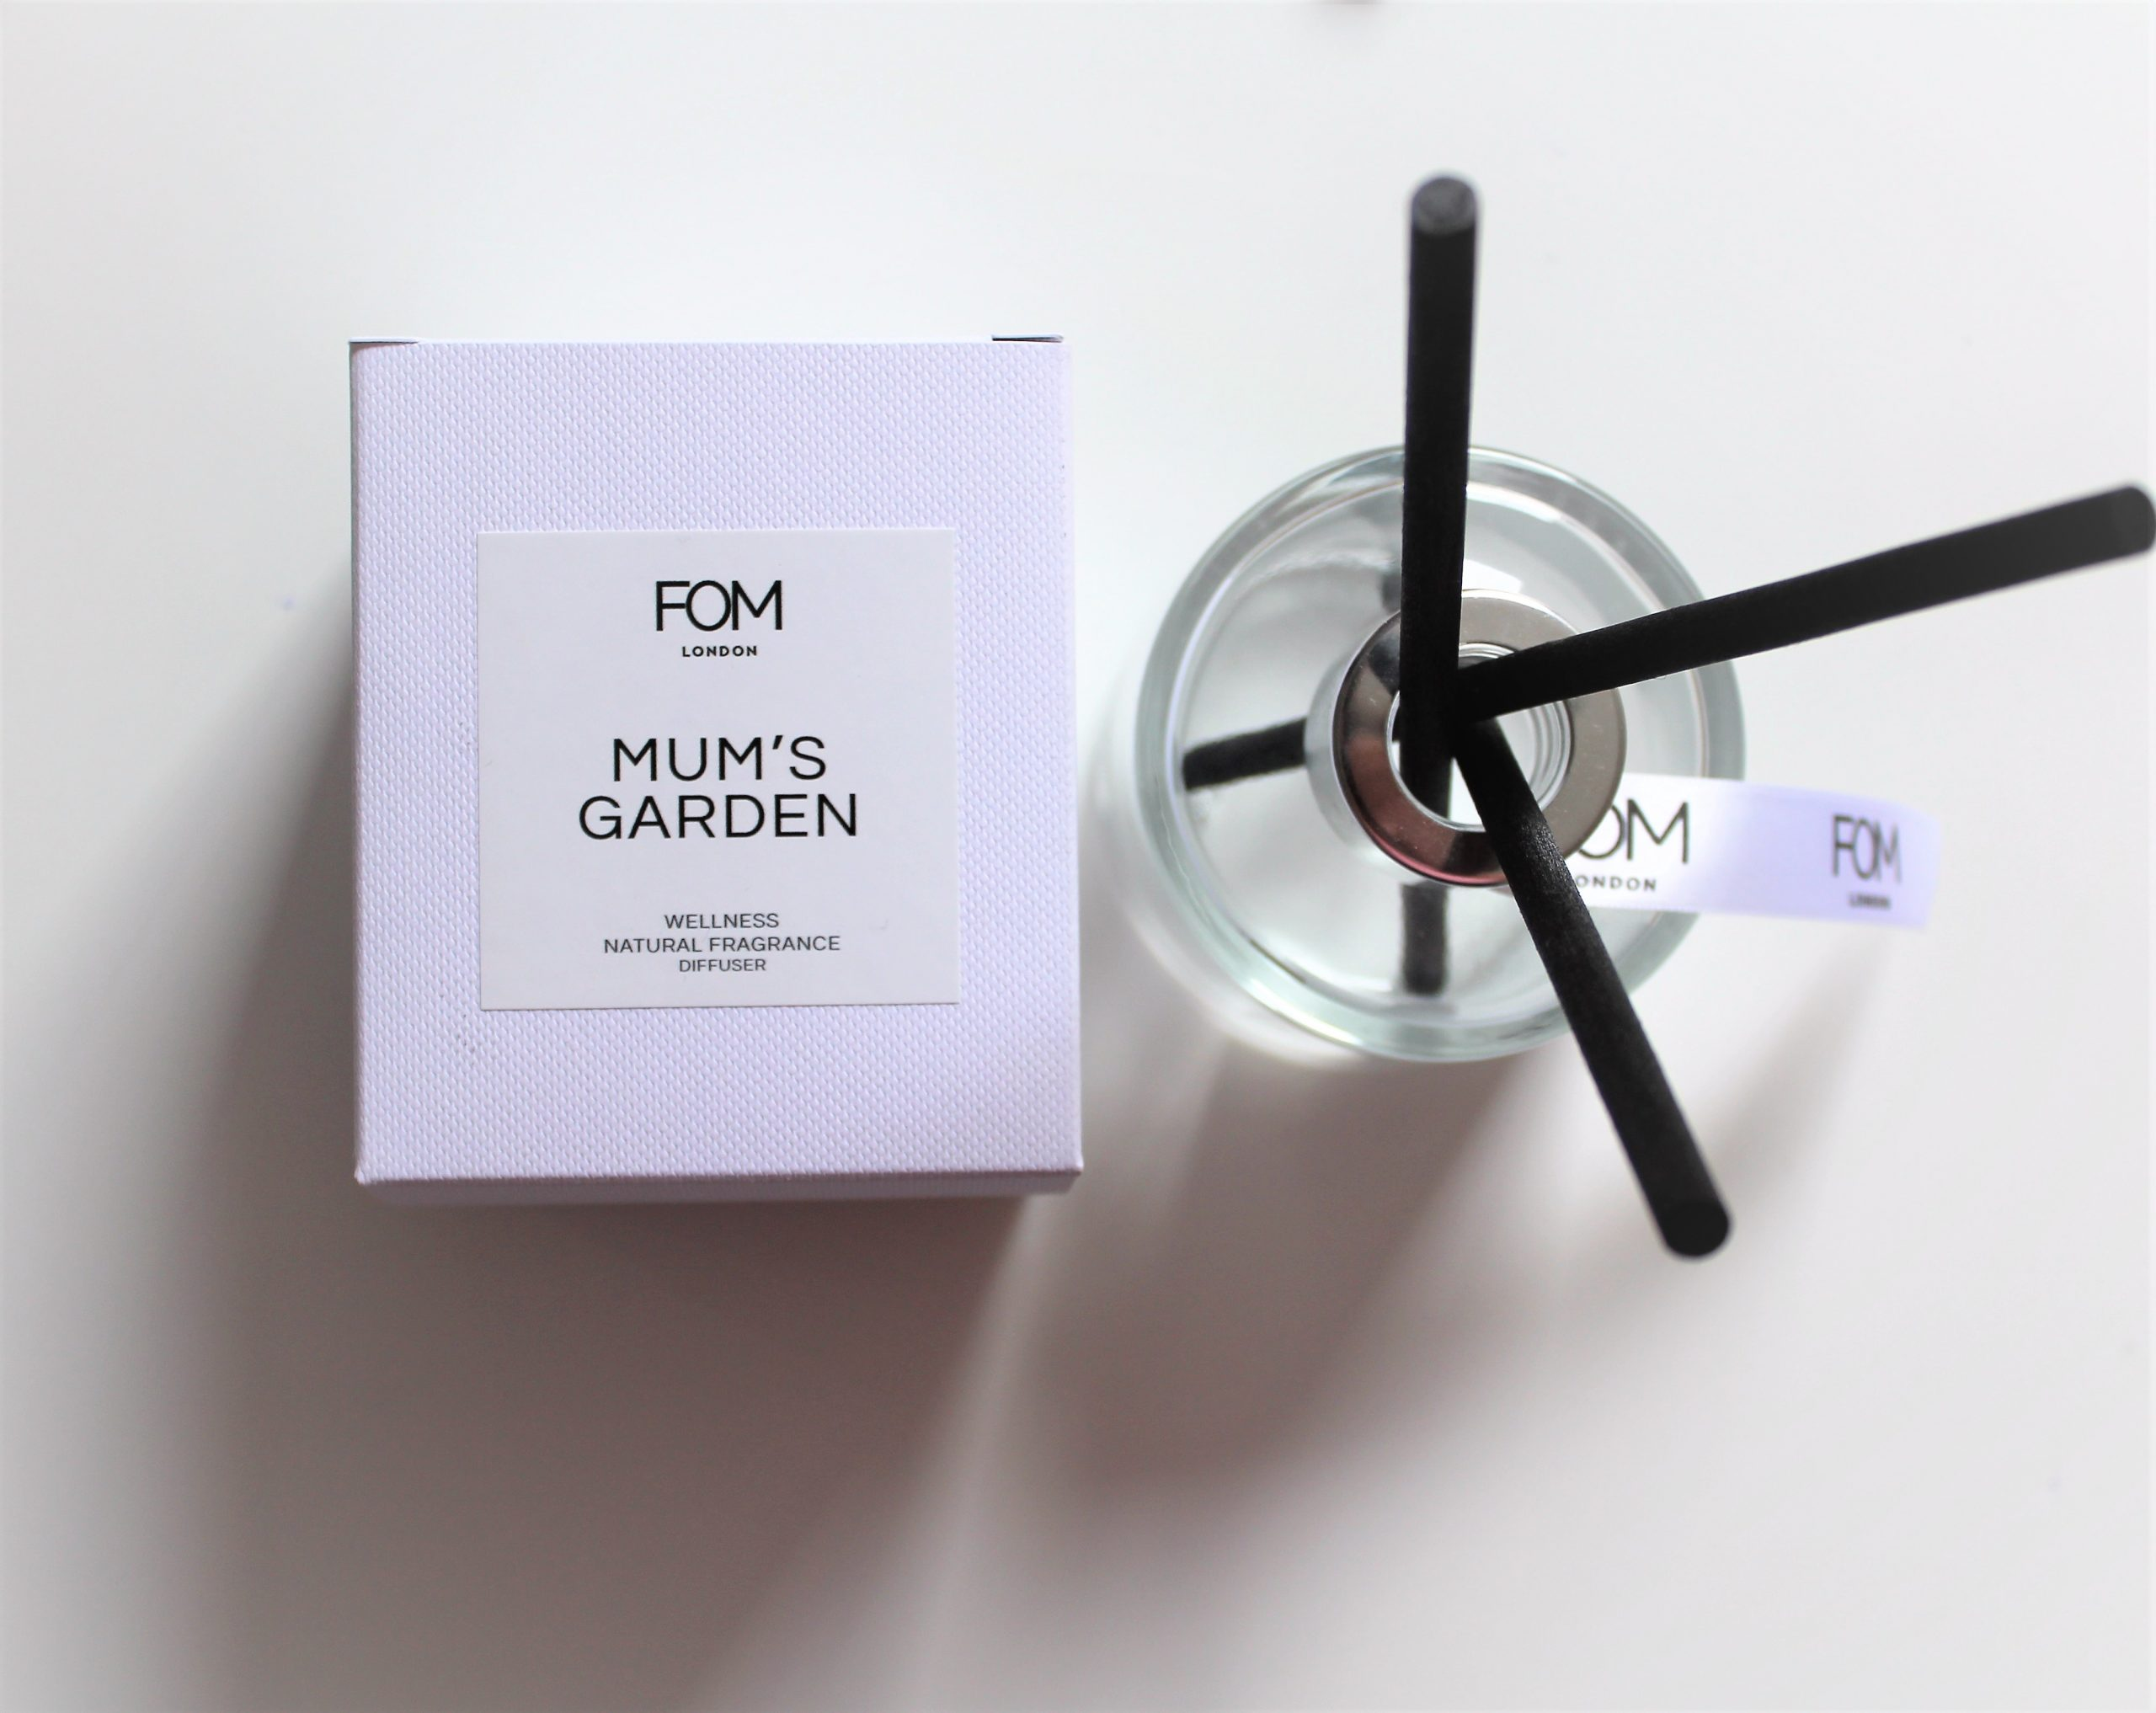 FOM London natural fragrance for home